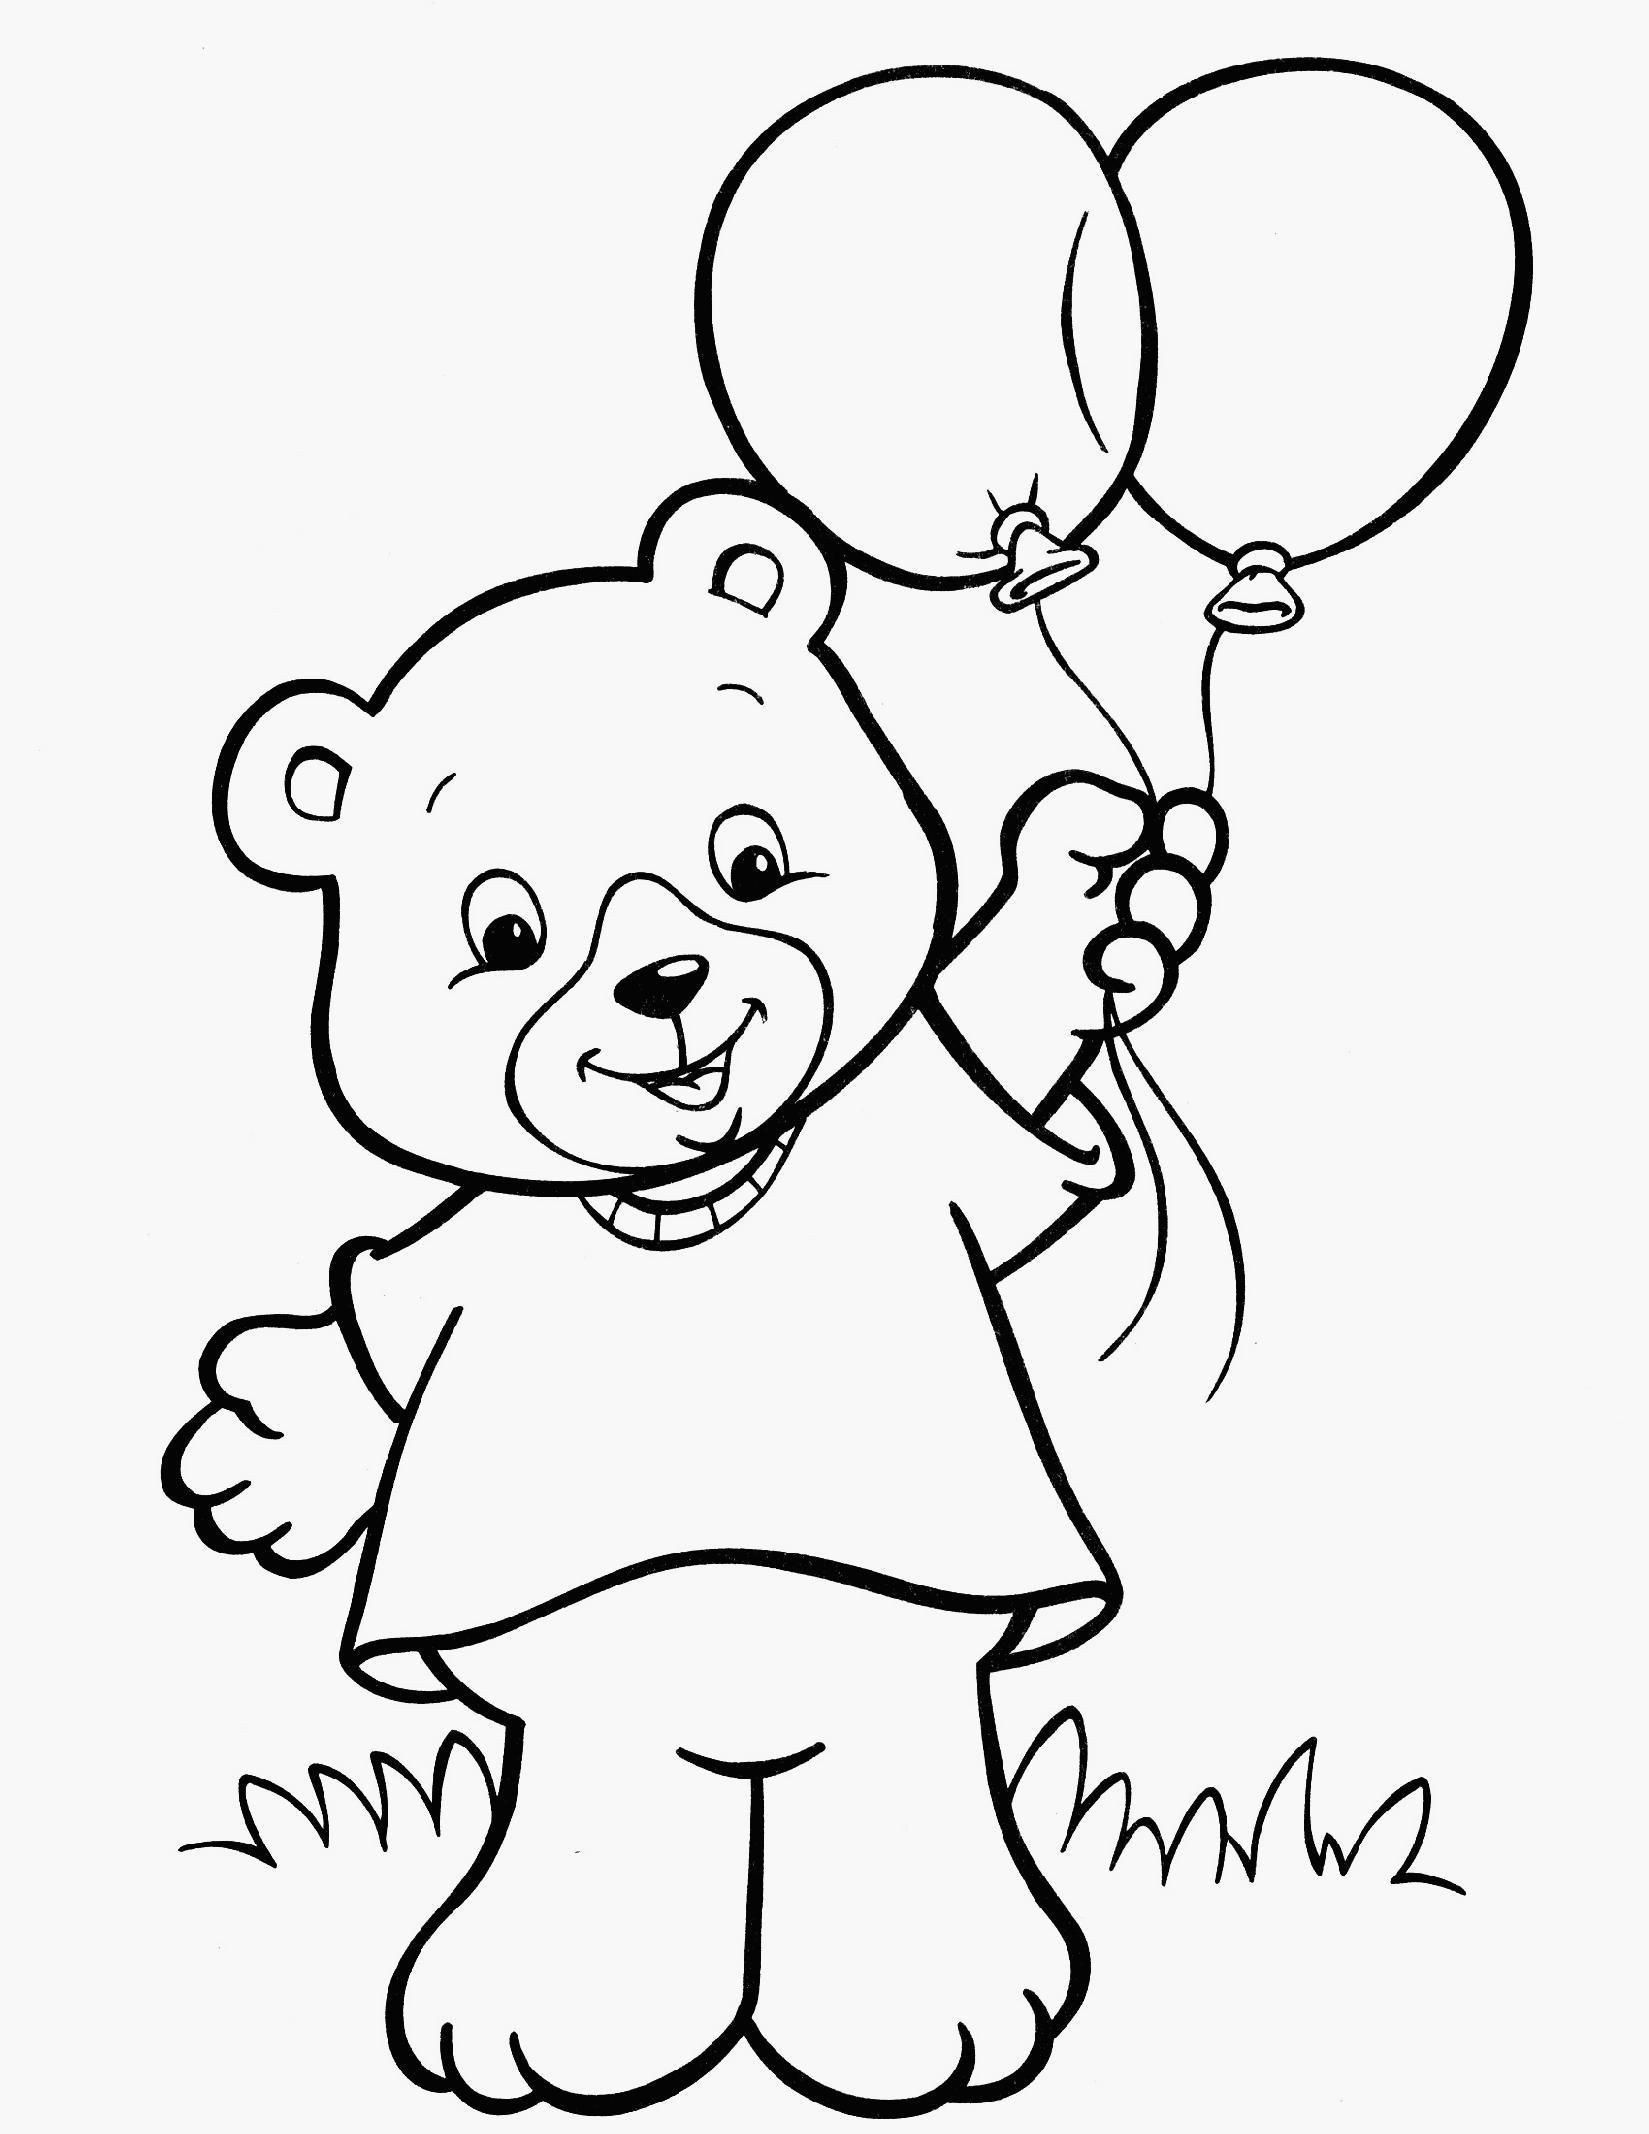 Coloring Games For 4 Year Olds Easy Drawing For 4 Year Olds At Getdrawings In 2020 Crayola Coloring Pages Bear Coloring Pages Summer Coloring Pages